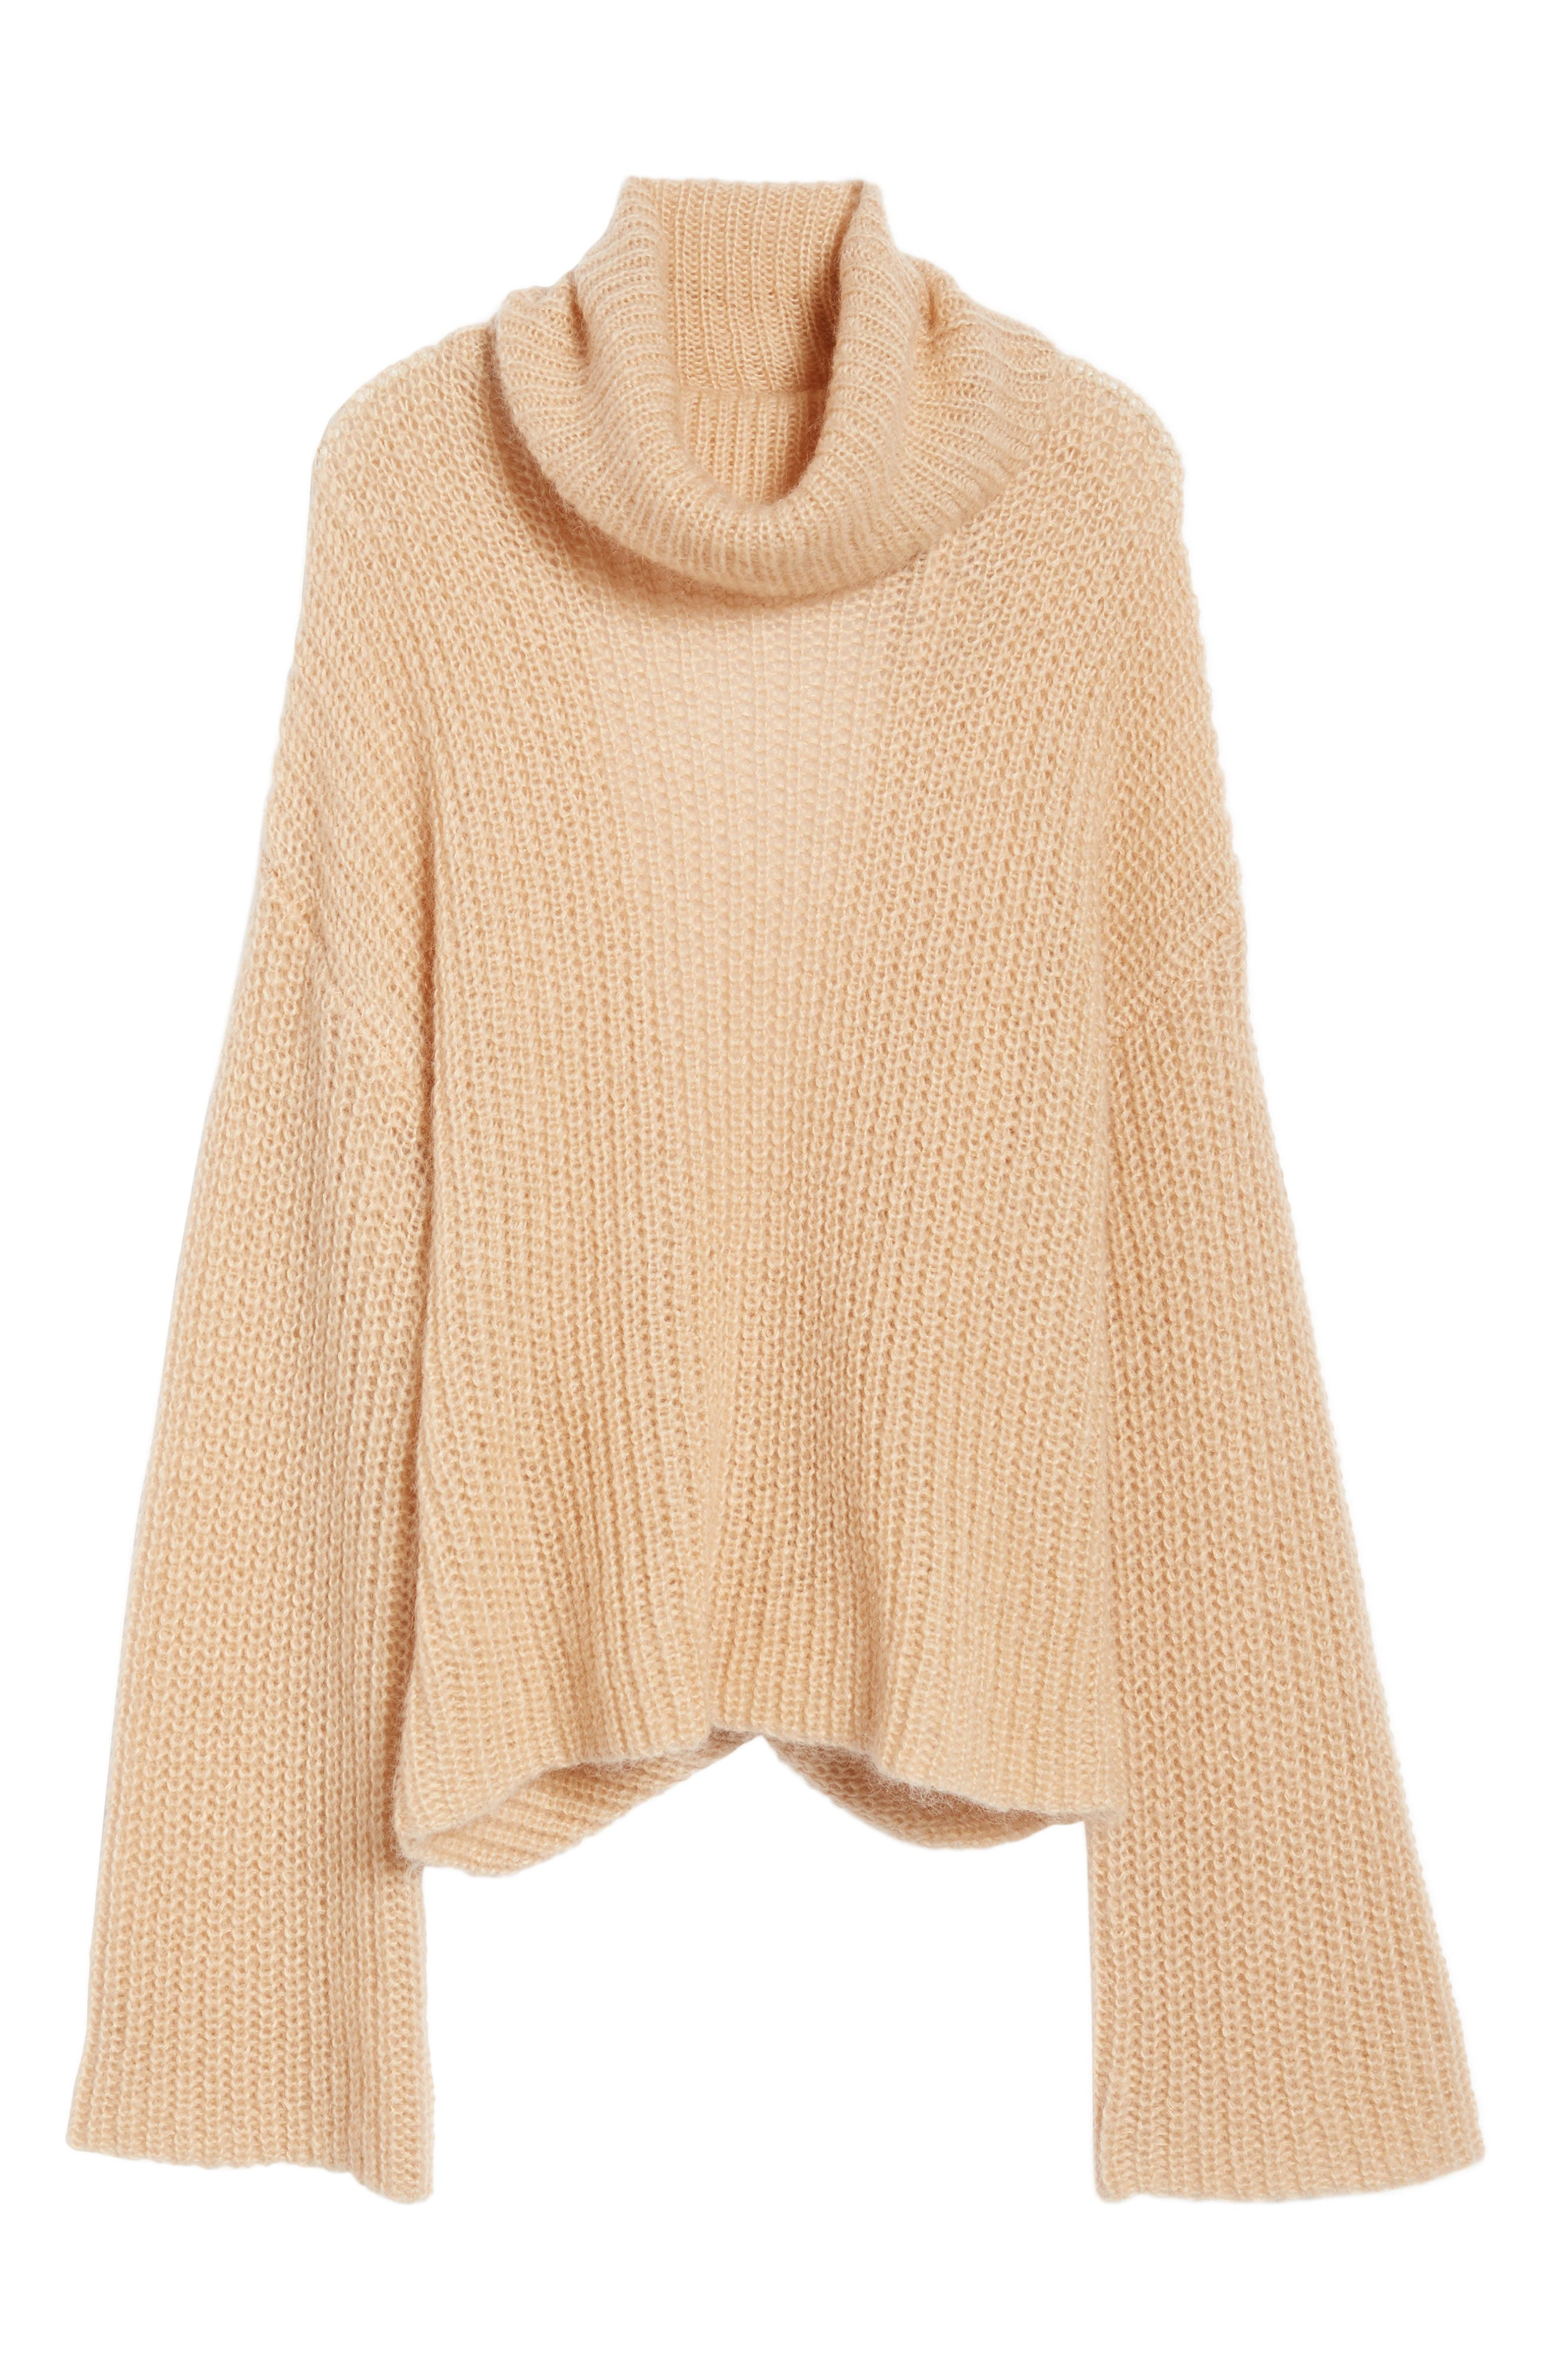 Cross Back Turtleneck Sweater,                             Alternate thumbnail 6, color,                             Toasted Almond